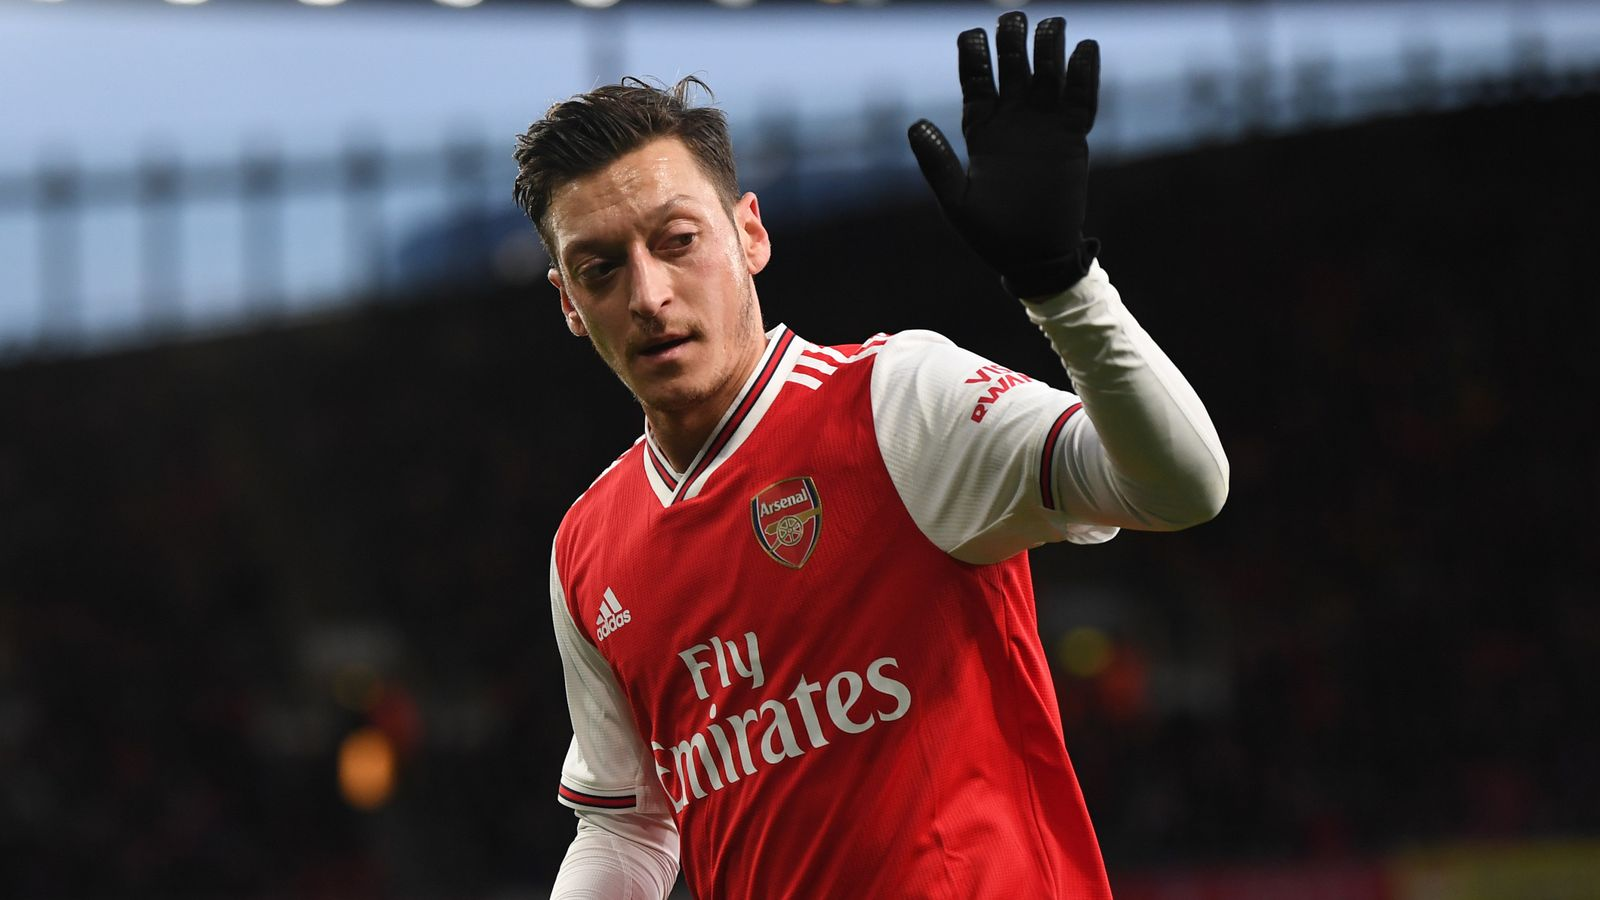 Mesut Ozil helps Arsenal find their groove as Newcastle floored